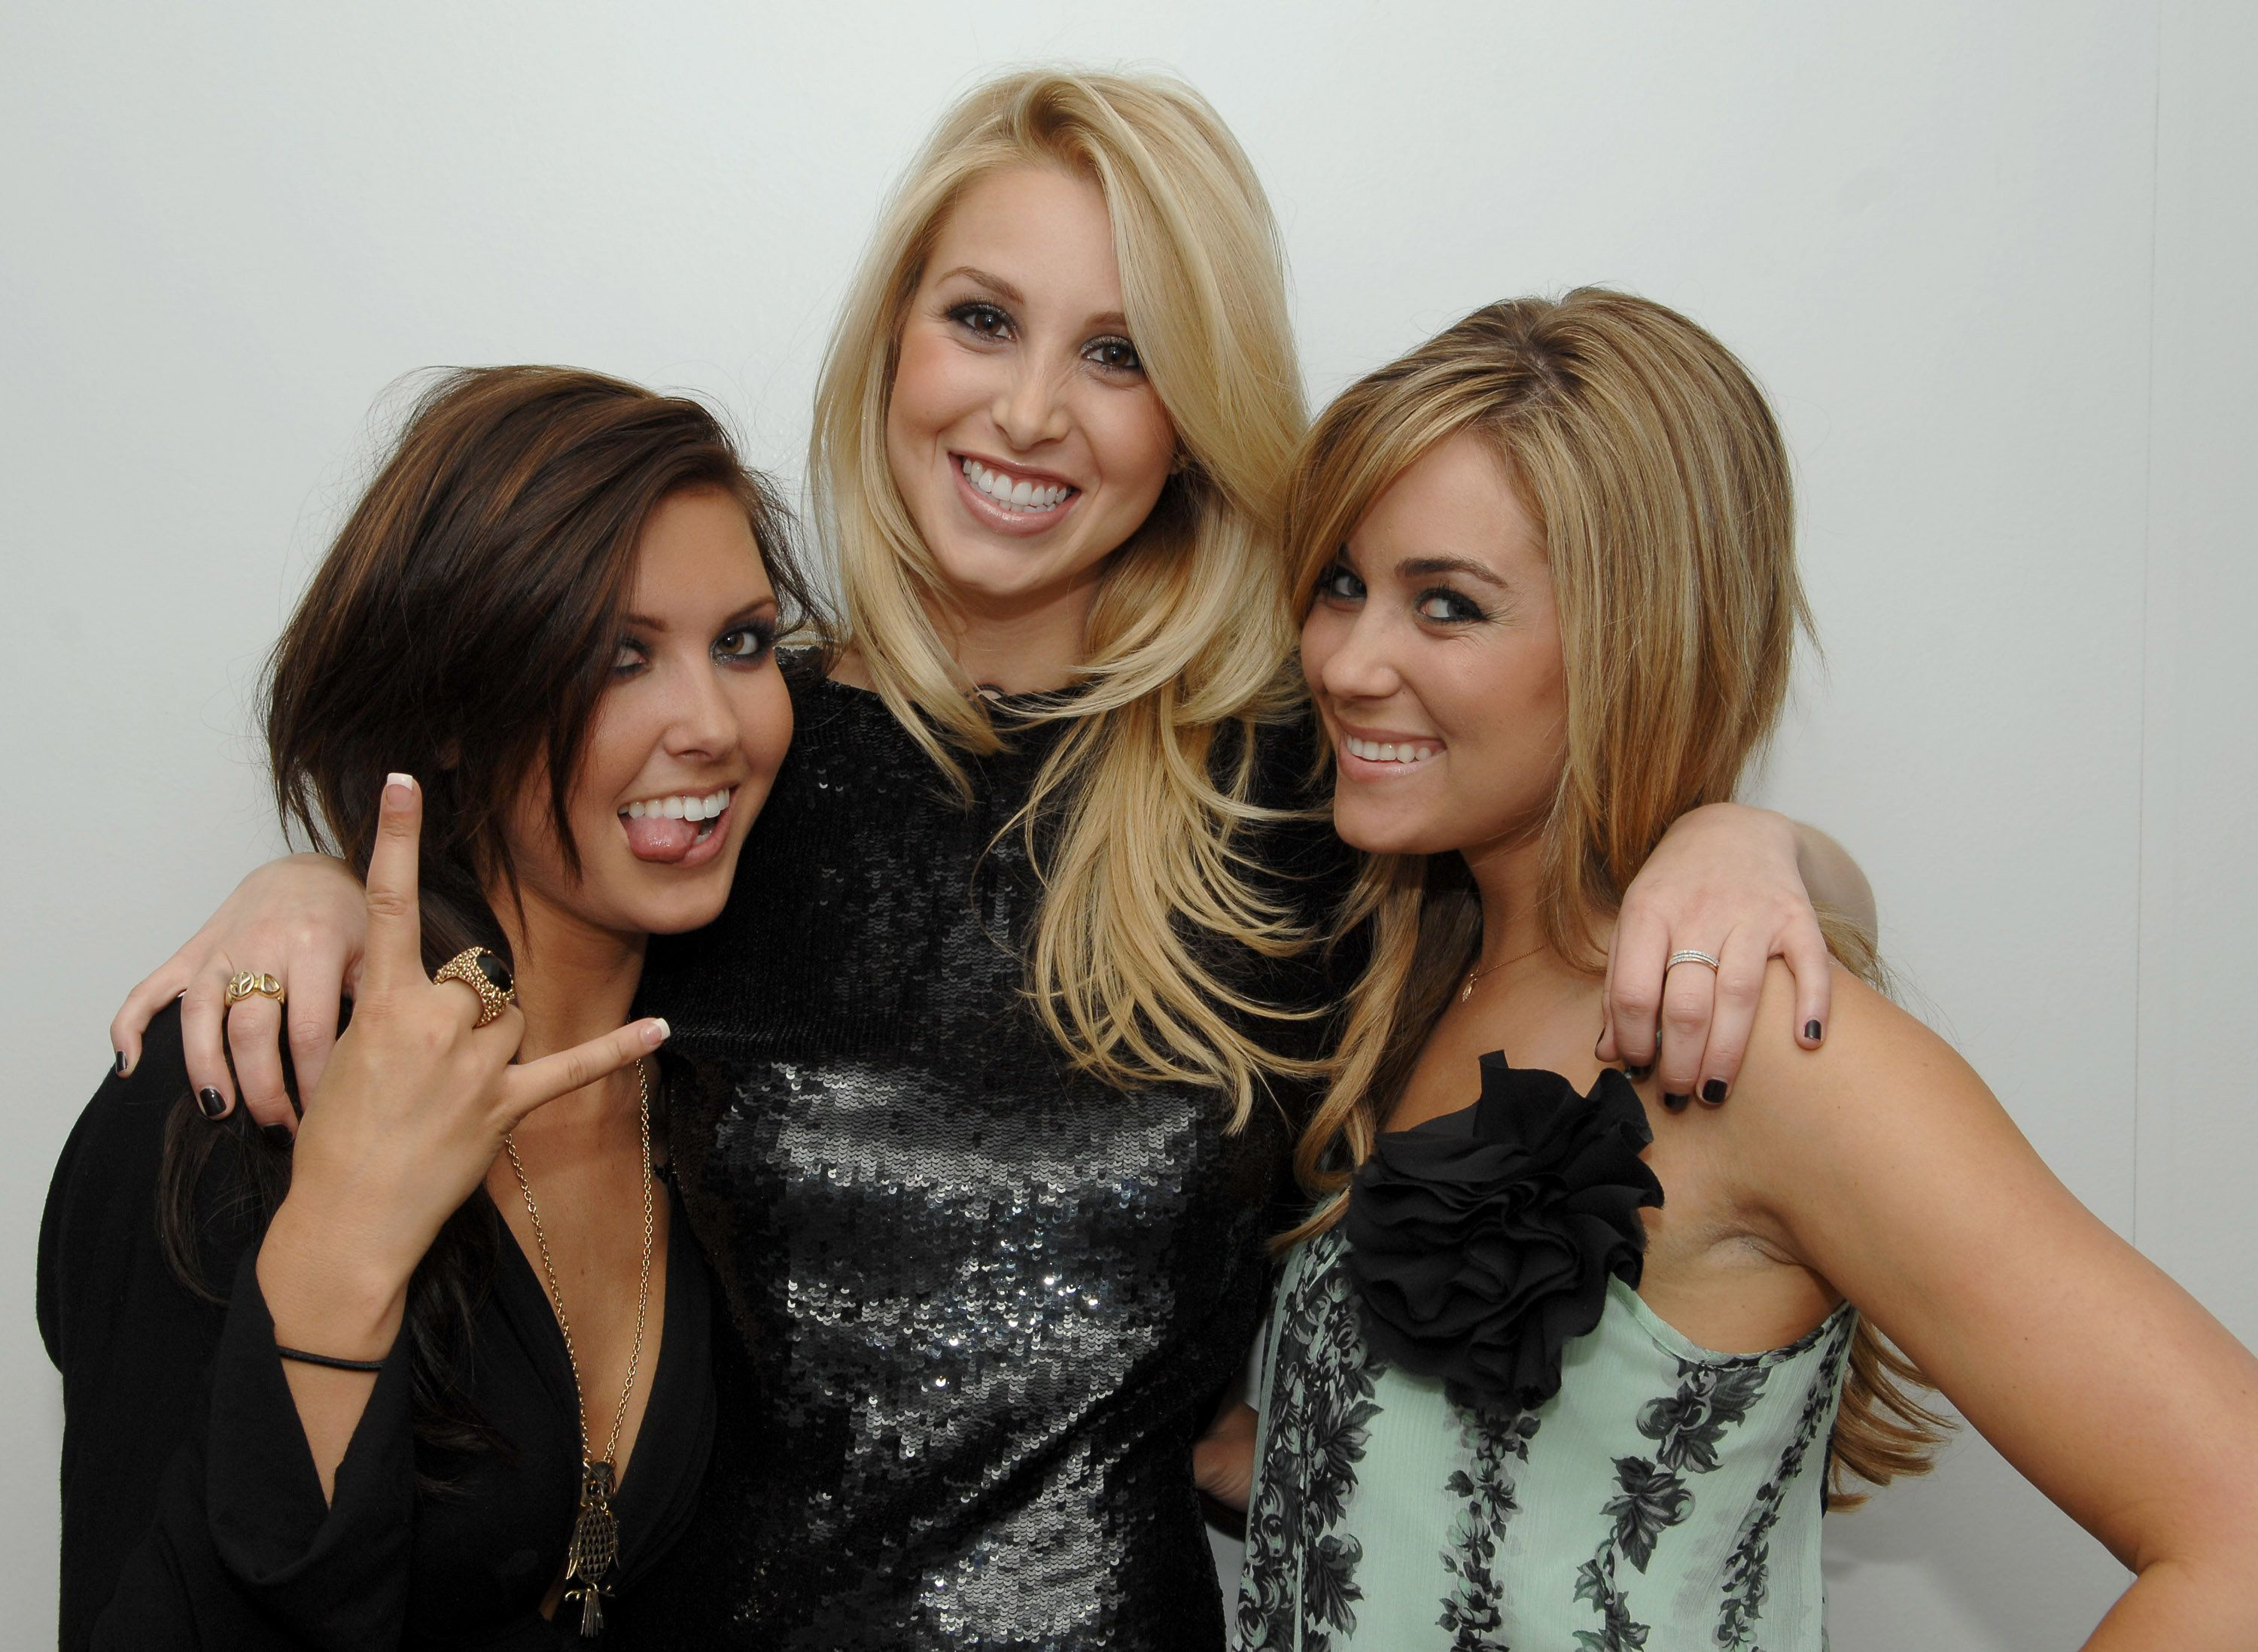 Audrina Patridge, Whitney Port and Lauren Conrad (Photo by Dimitrios Kambouris/WireImage)